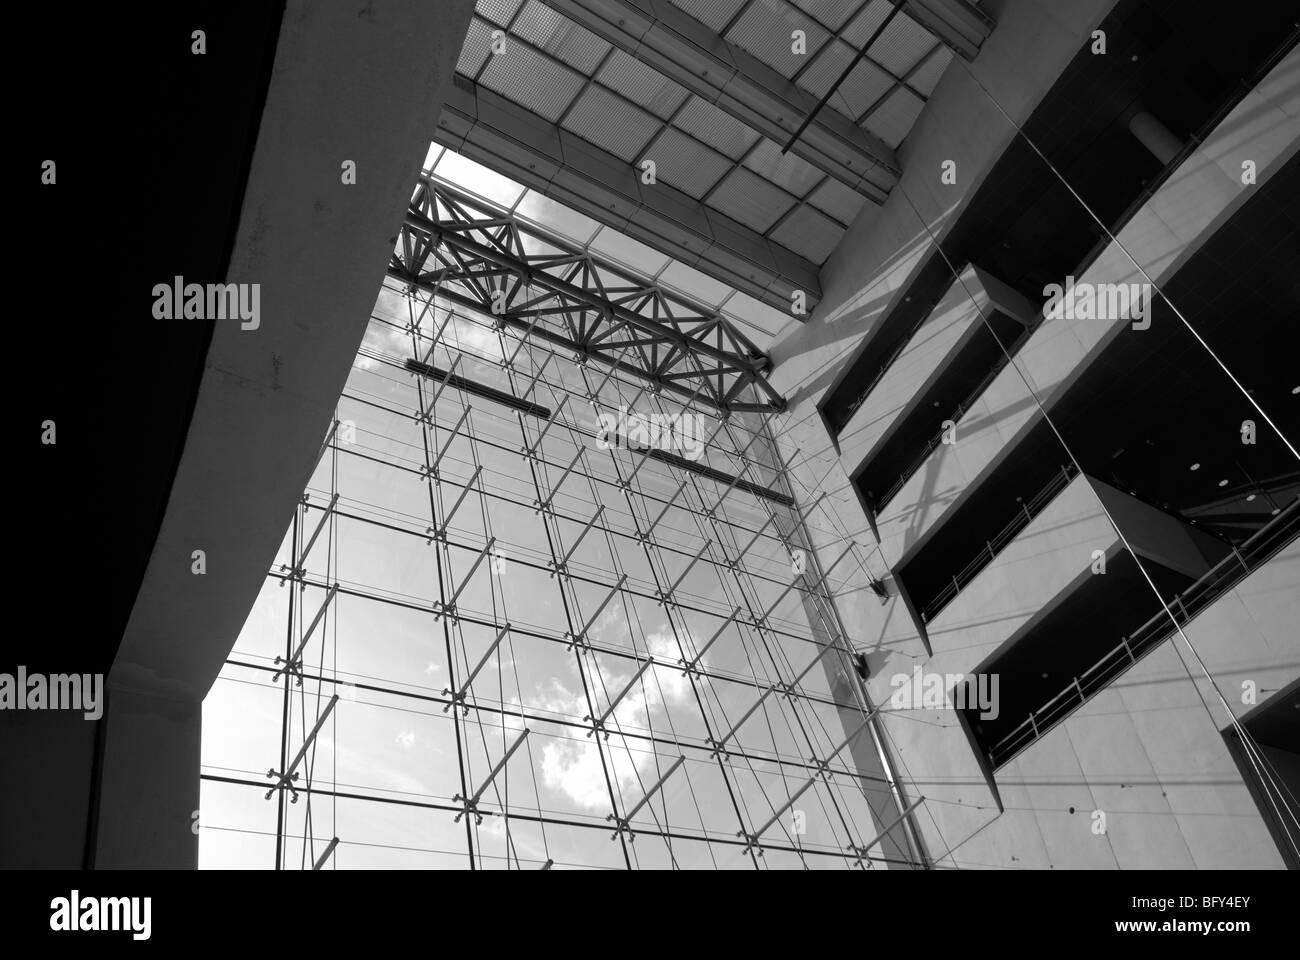 MODERN GLASS FACADE - Stock Image